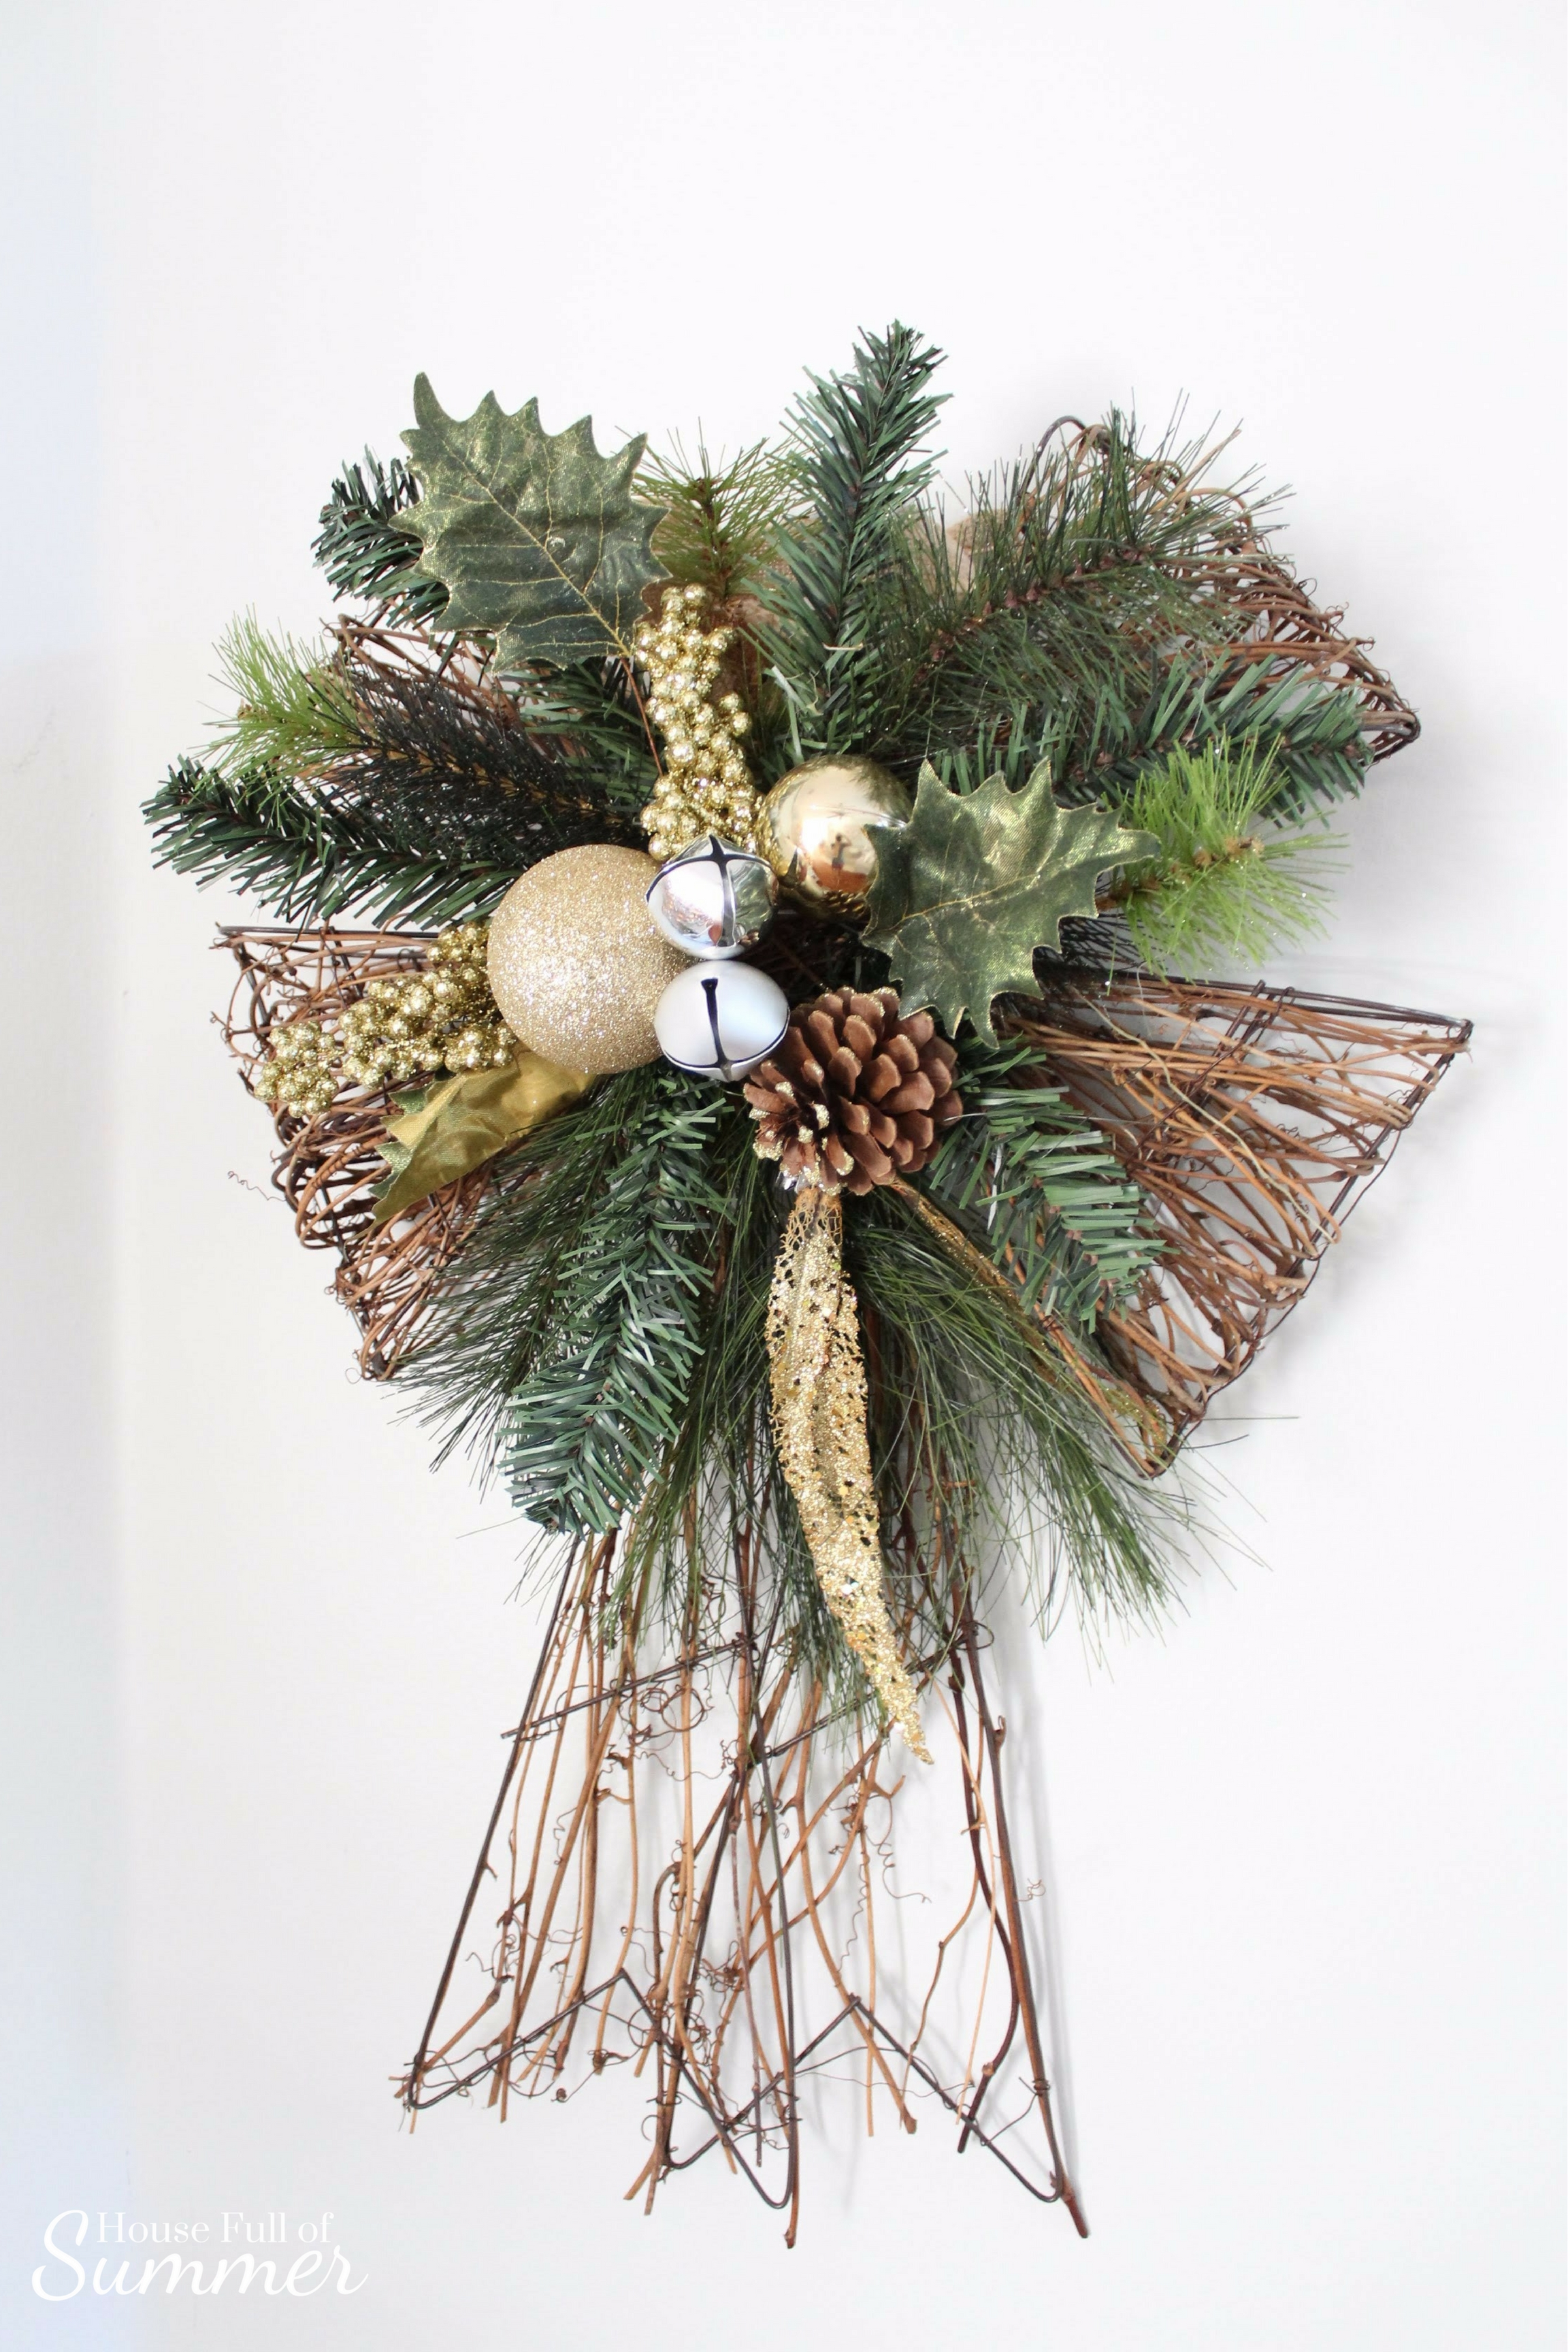 Christmas Home Tour | House Full of Summer blog hop - Cheerful Christmas Home Tourcoastal christmas neutral christmas decor, holiday home tour, florida christmas, diy christmas dedcor, upcycled